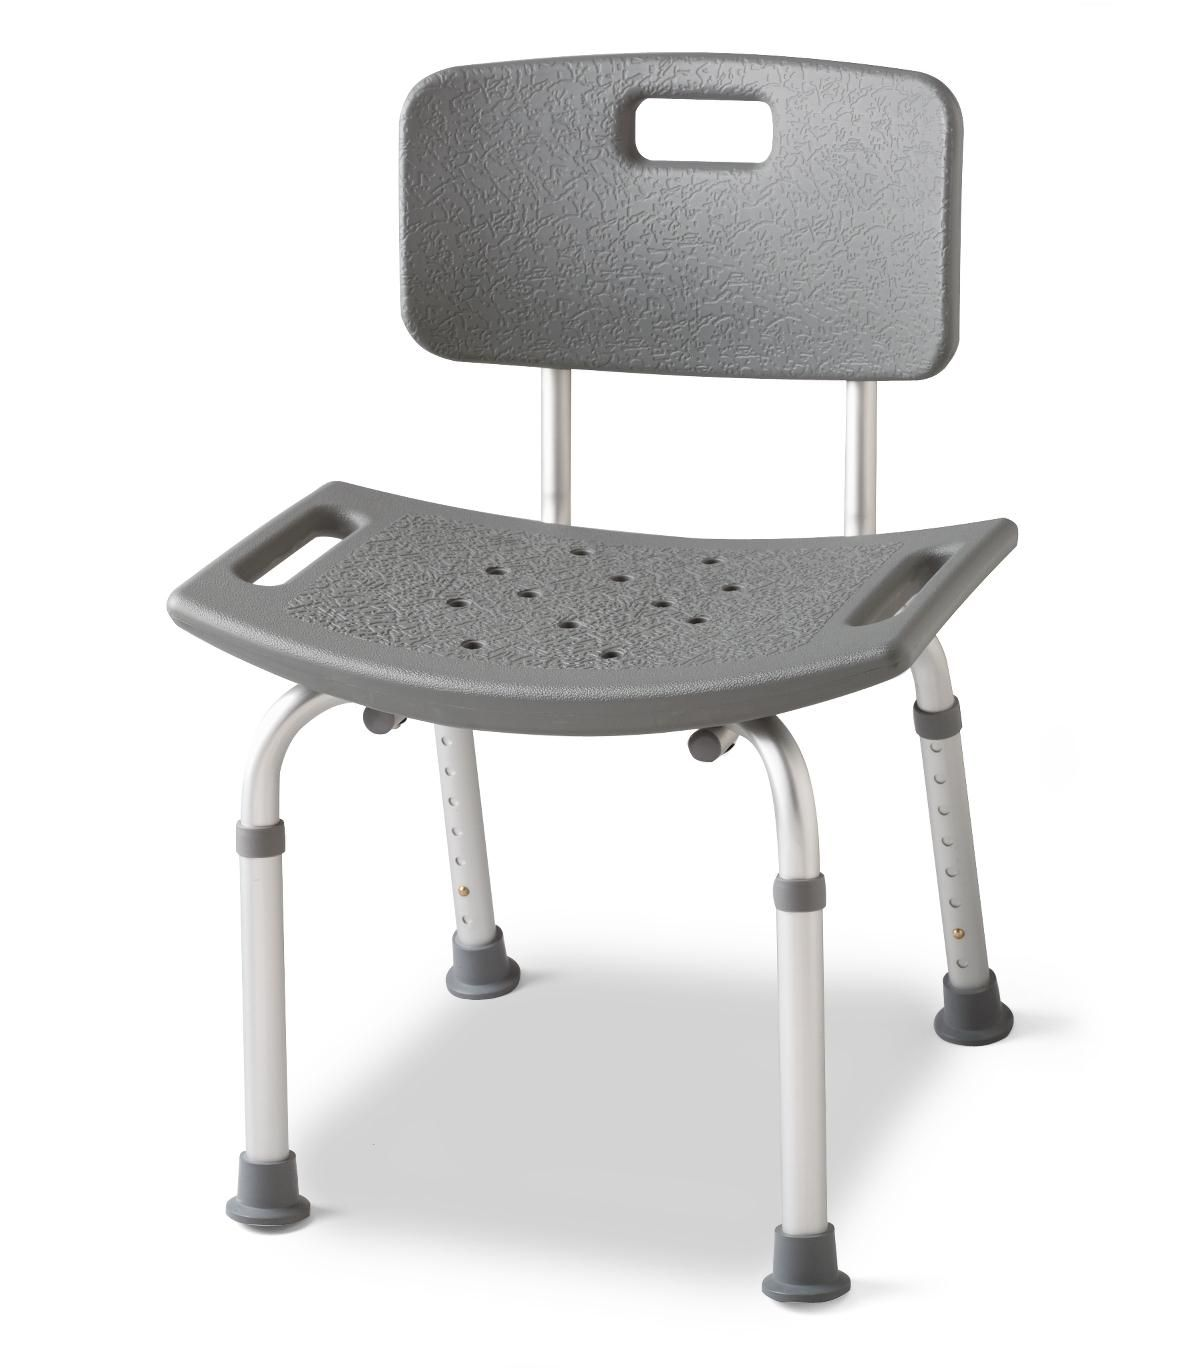 Bath Seat For Elderly Handicap Shower Seat Shower Chairs For The Disabled Small Bathtub Chair Bath Bench Bench With Back Shower Chair